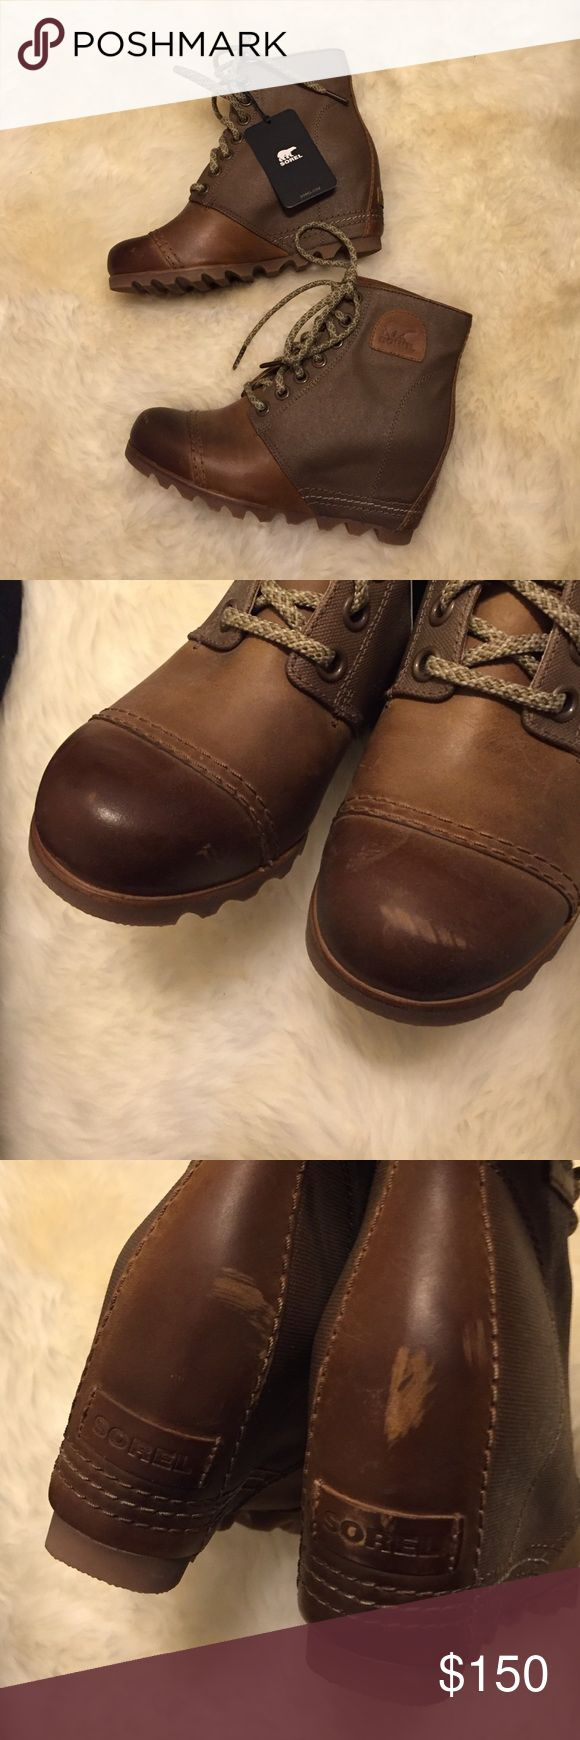 Sorel premium wedge 1964 NWT 8 NWT very cute sorel wedge boots. These still have the tags, have never been worn besides trying them on in store and around the house. They are an intentionally distress style and did come with a few marks on the leather, see above. Sorel Shoes Ankle Boots & Booties